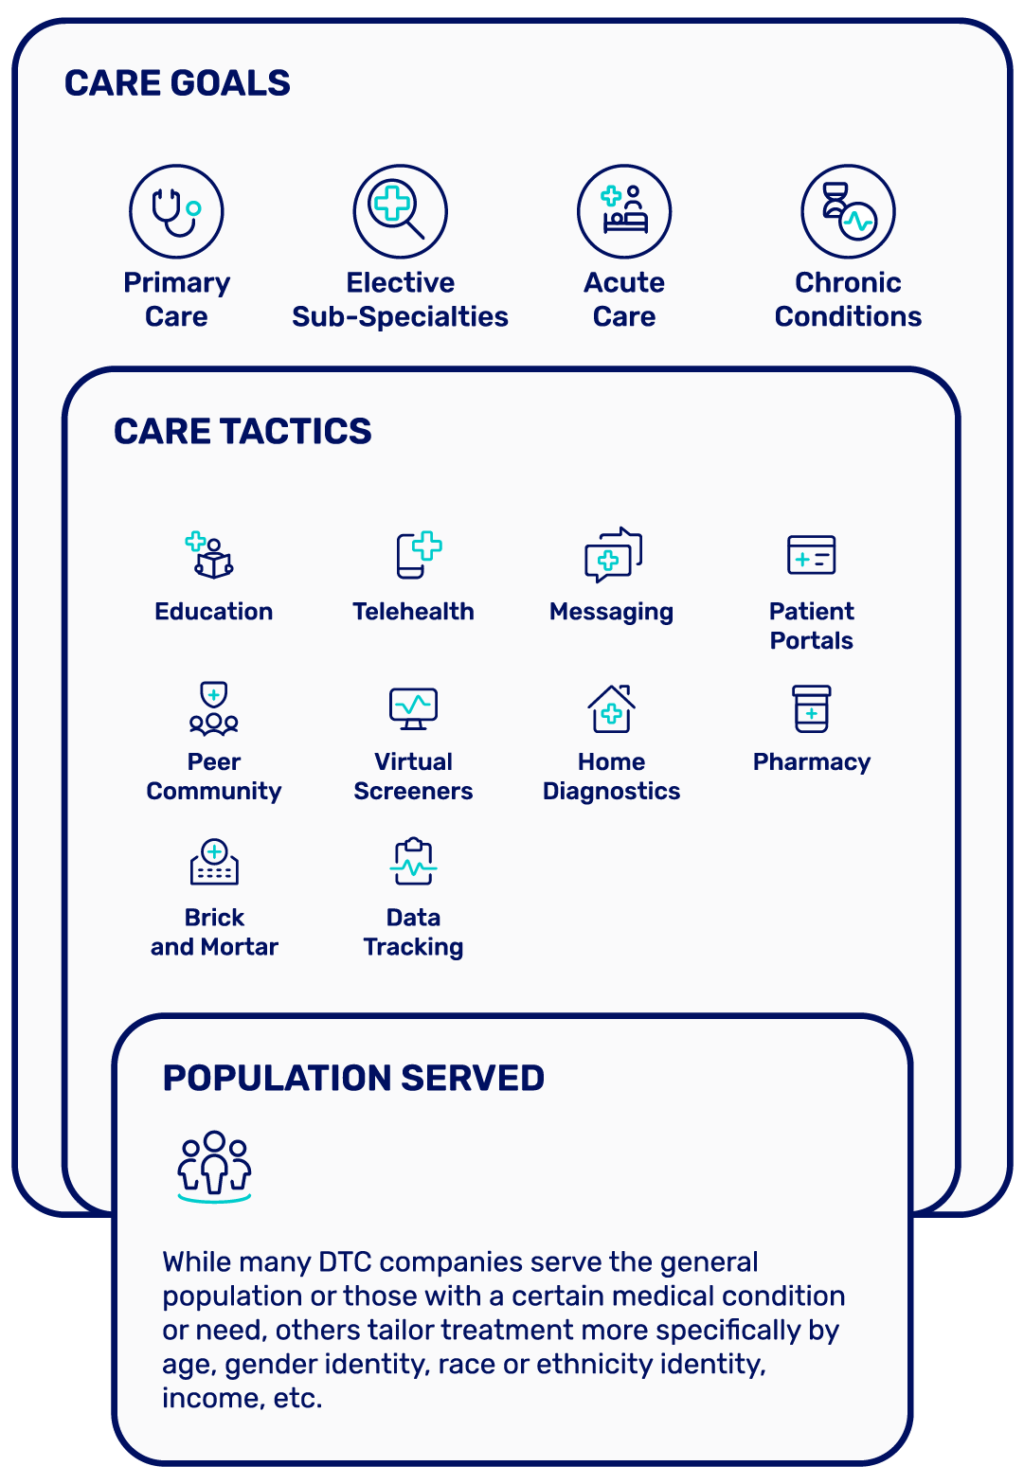 Graphic showing categorization of DTC companies based on care goals, care tactics, and populations served